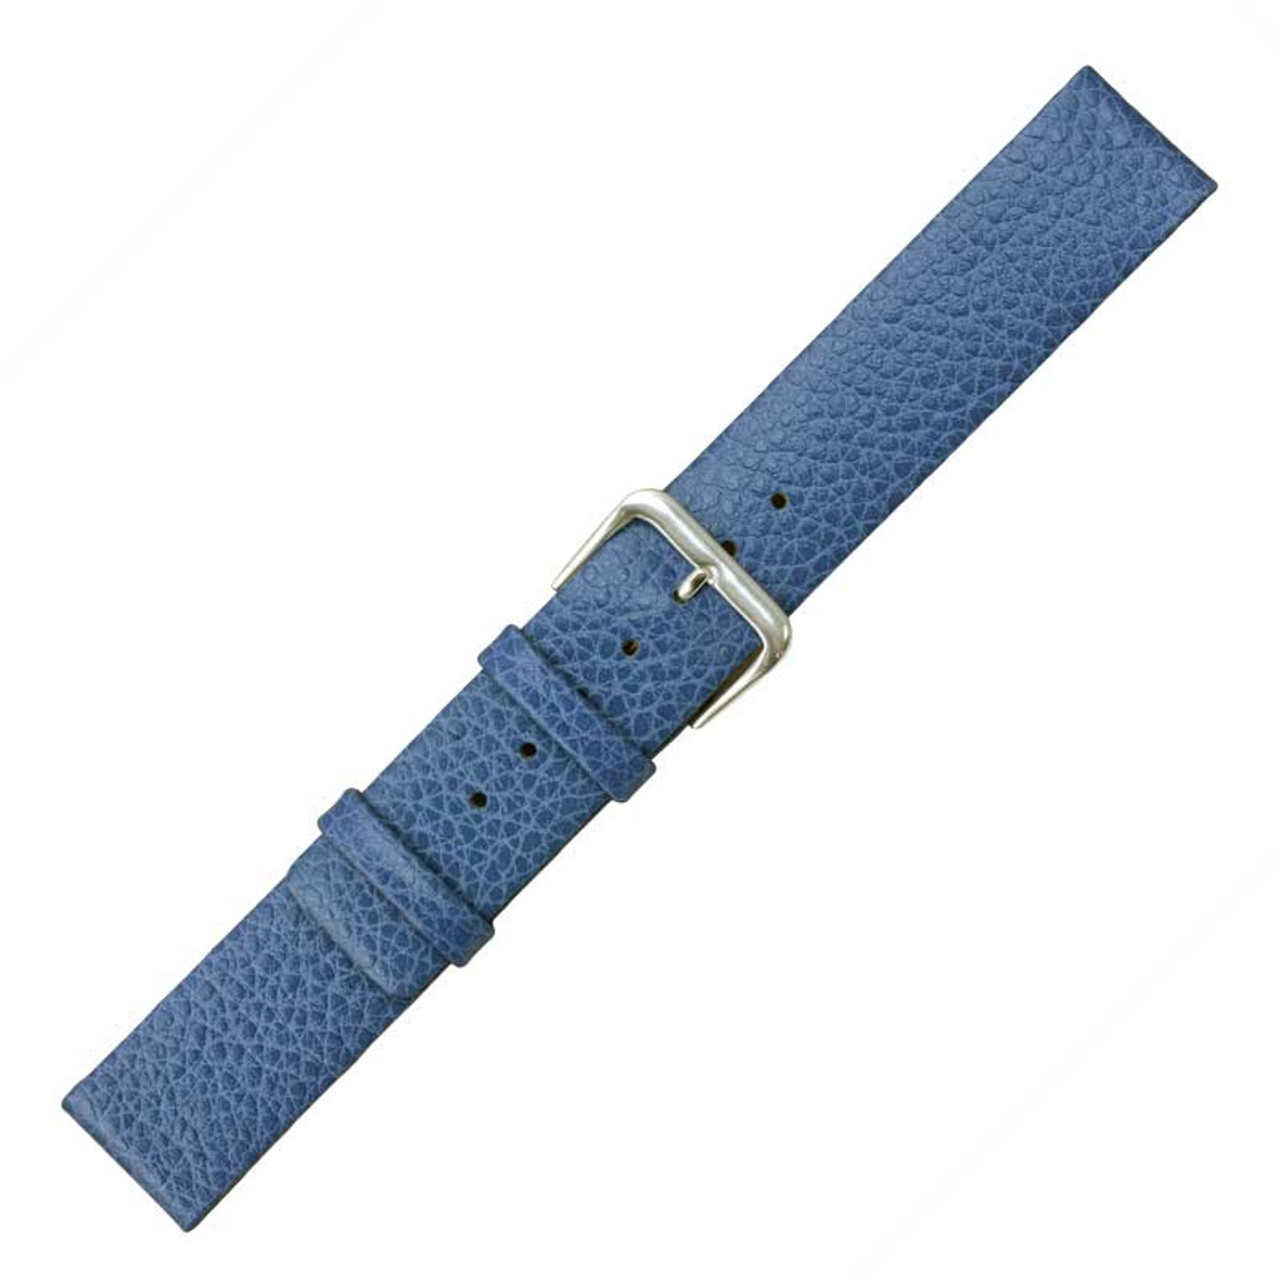 e38d88a8cb440 18mm Blue Calf Leather Watch Band 7 7 16 Inch Length